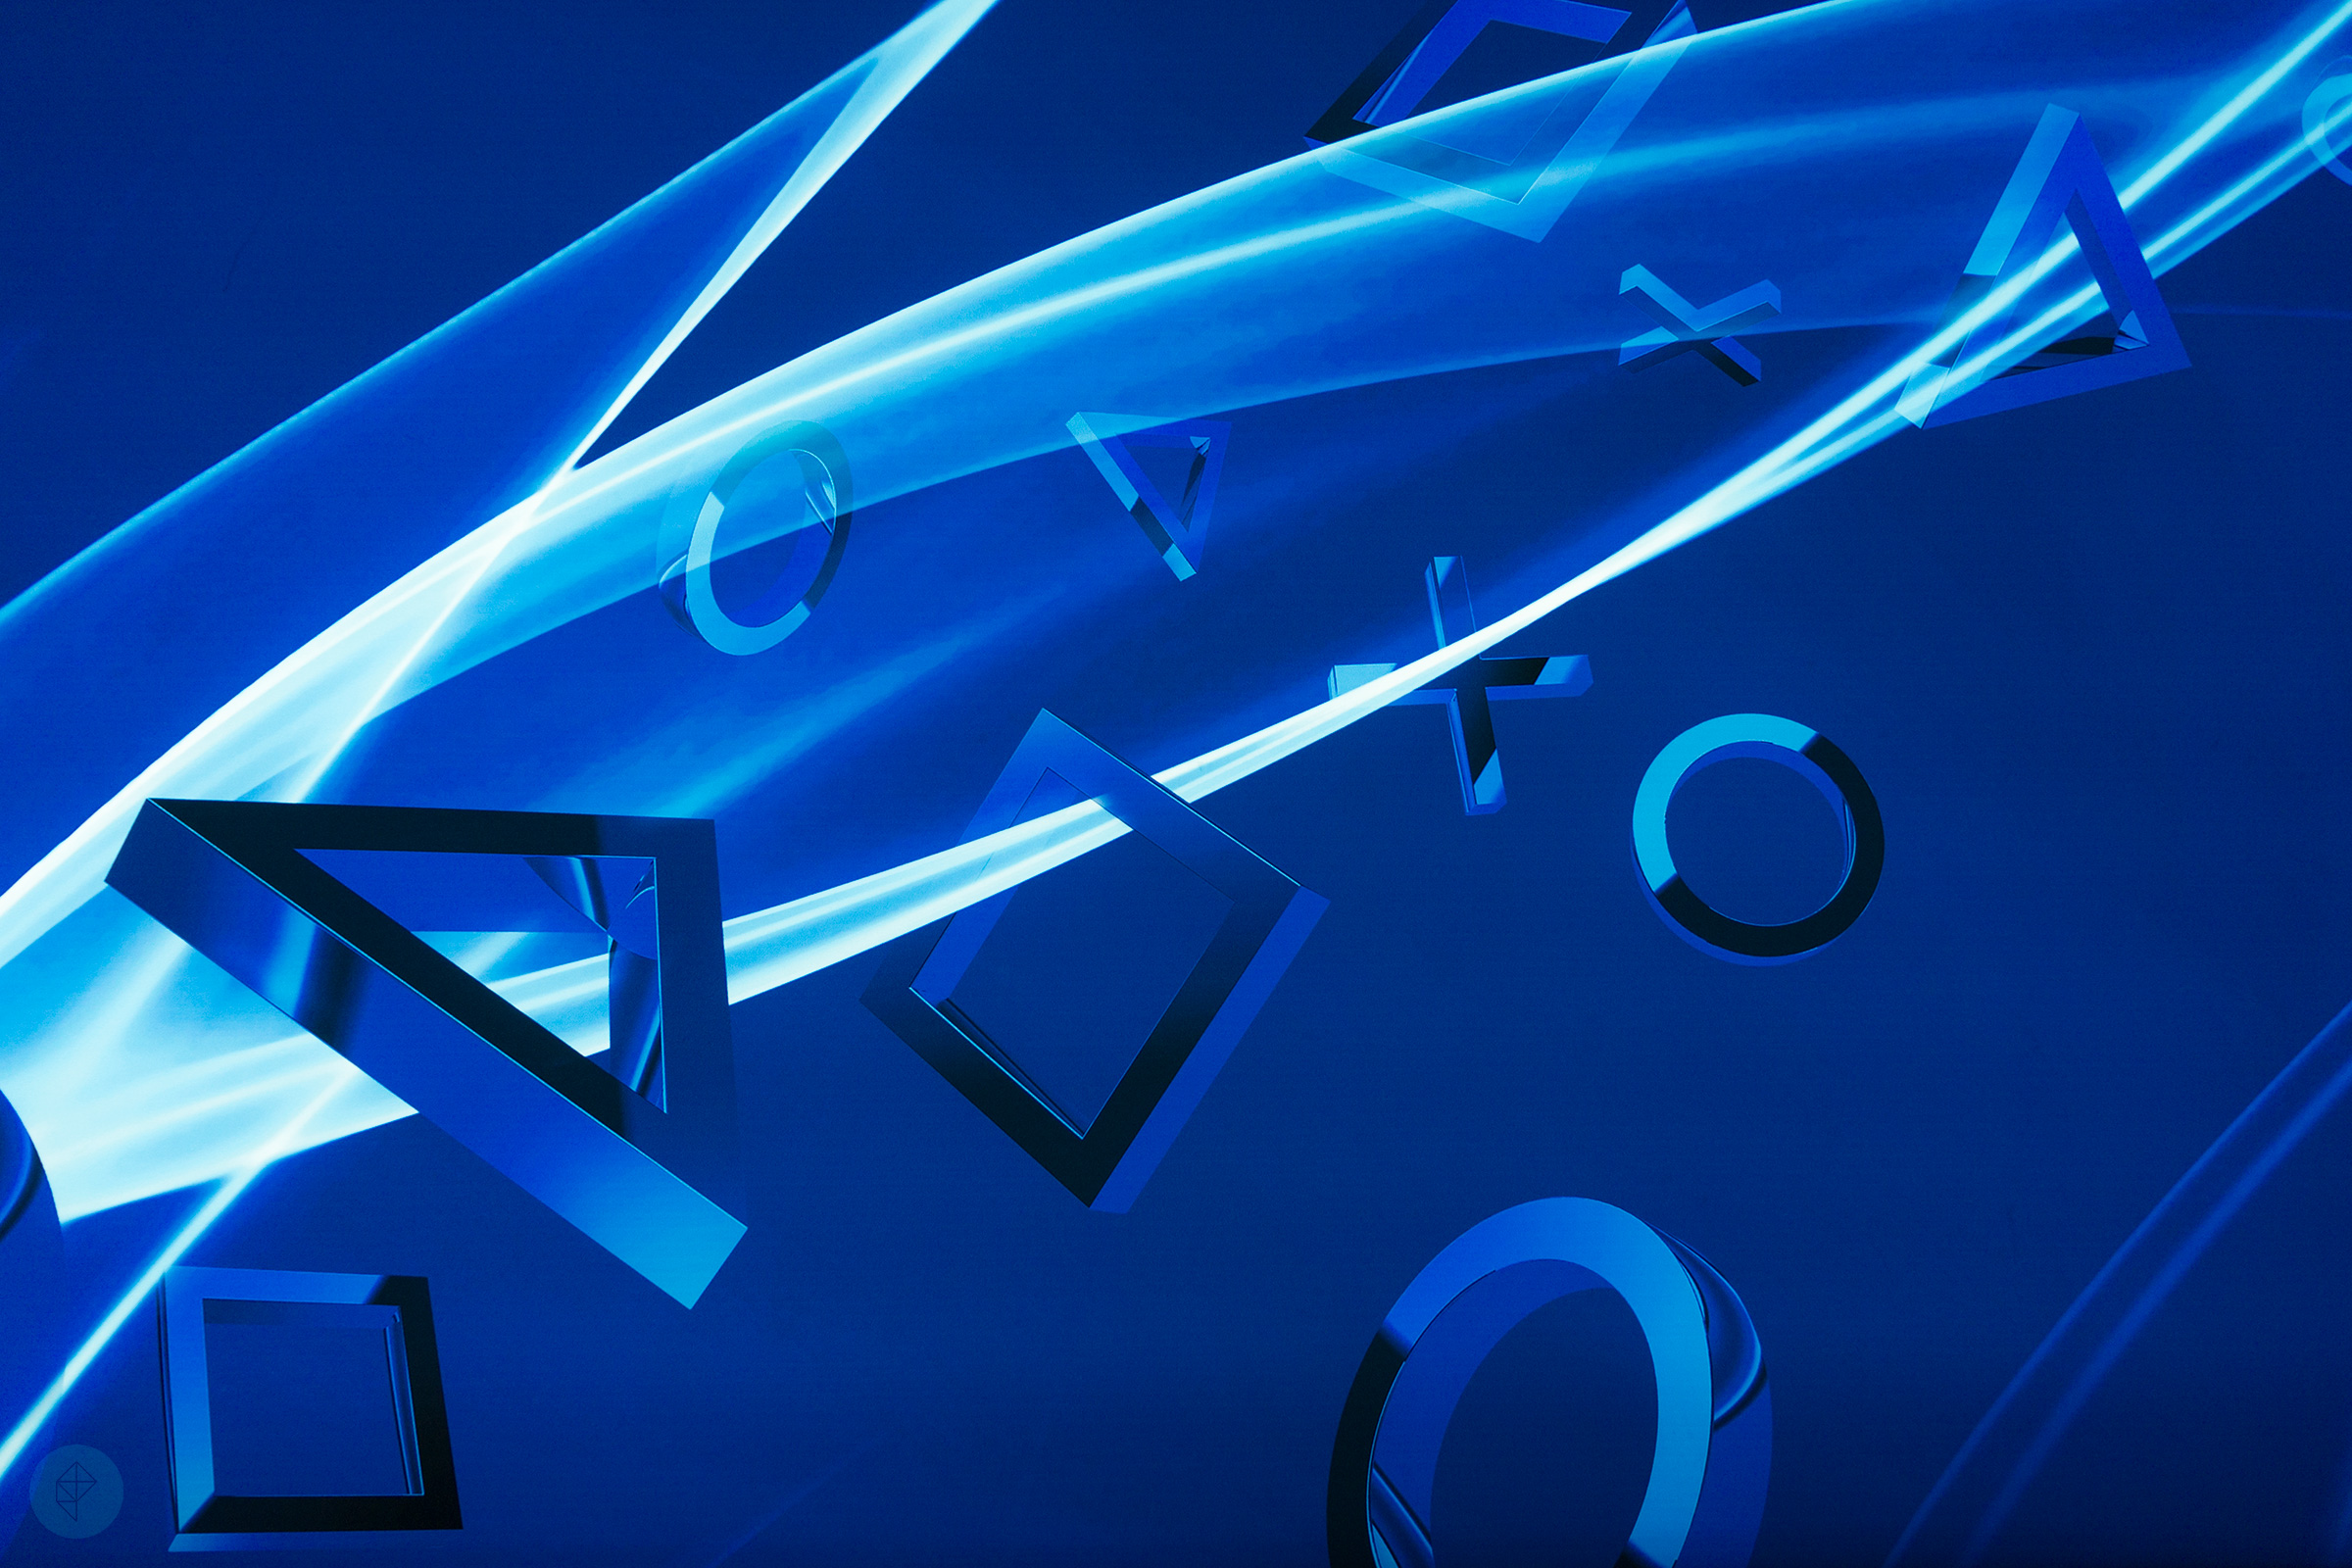 Why are PlayStation 4 download speeds terrible? Here are some ideas.